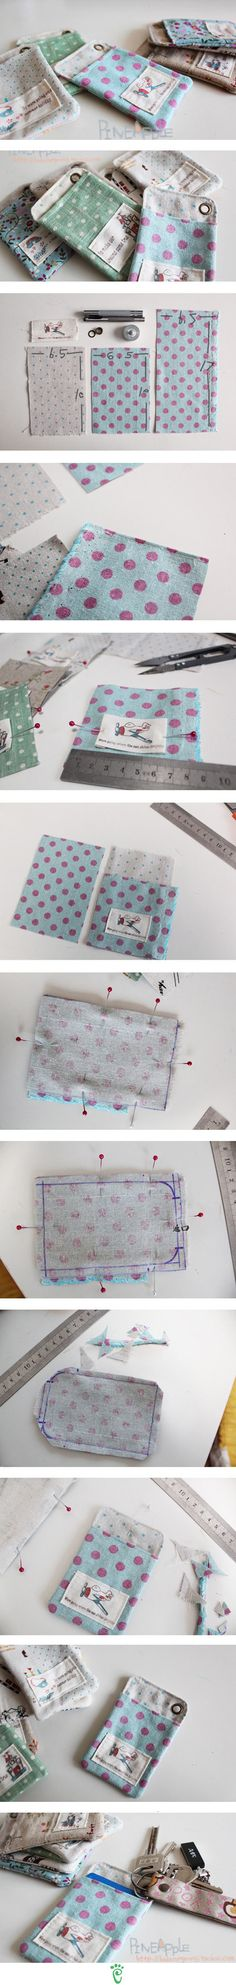 These are interesting. . . Kind of like a vintage-looking card holder. Cool!